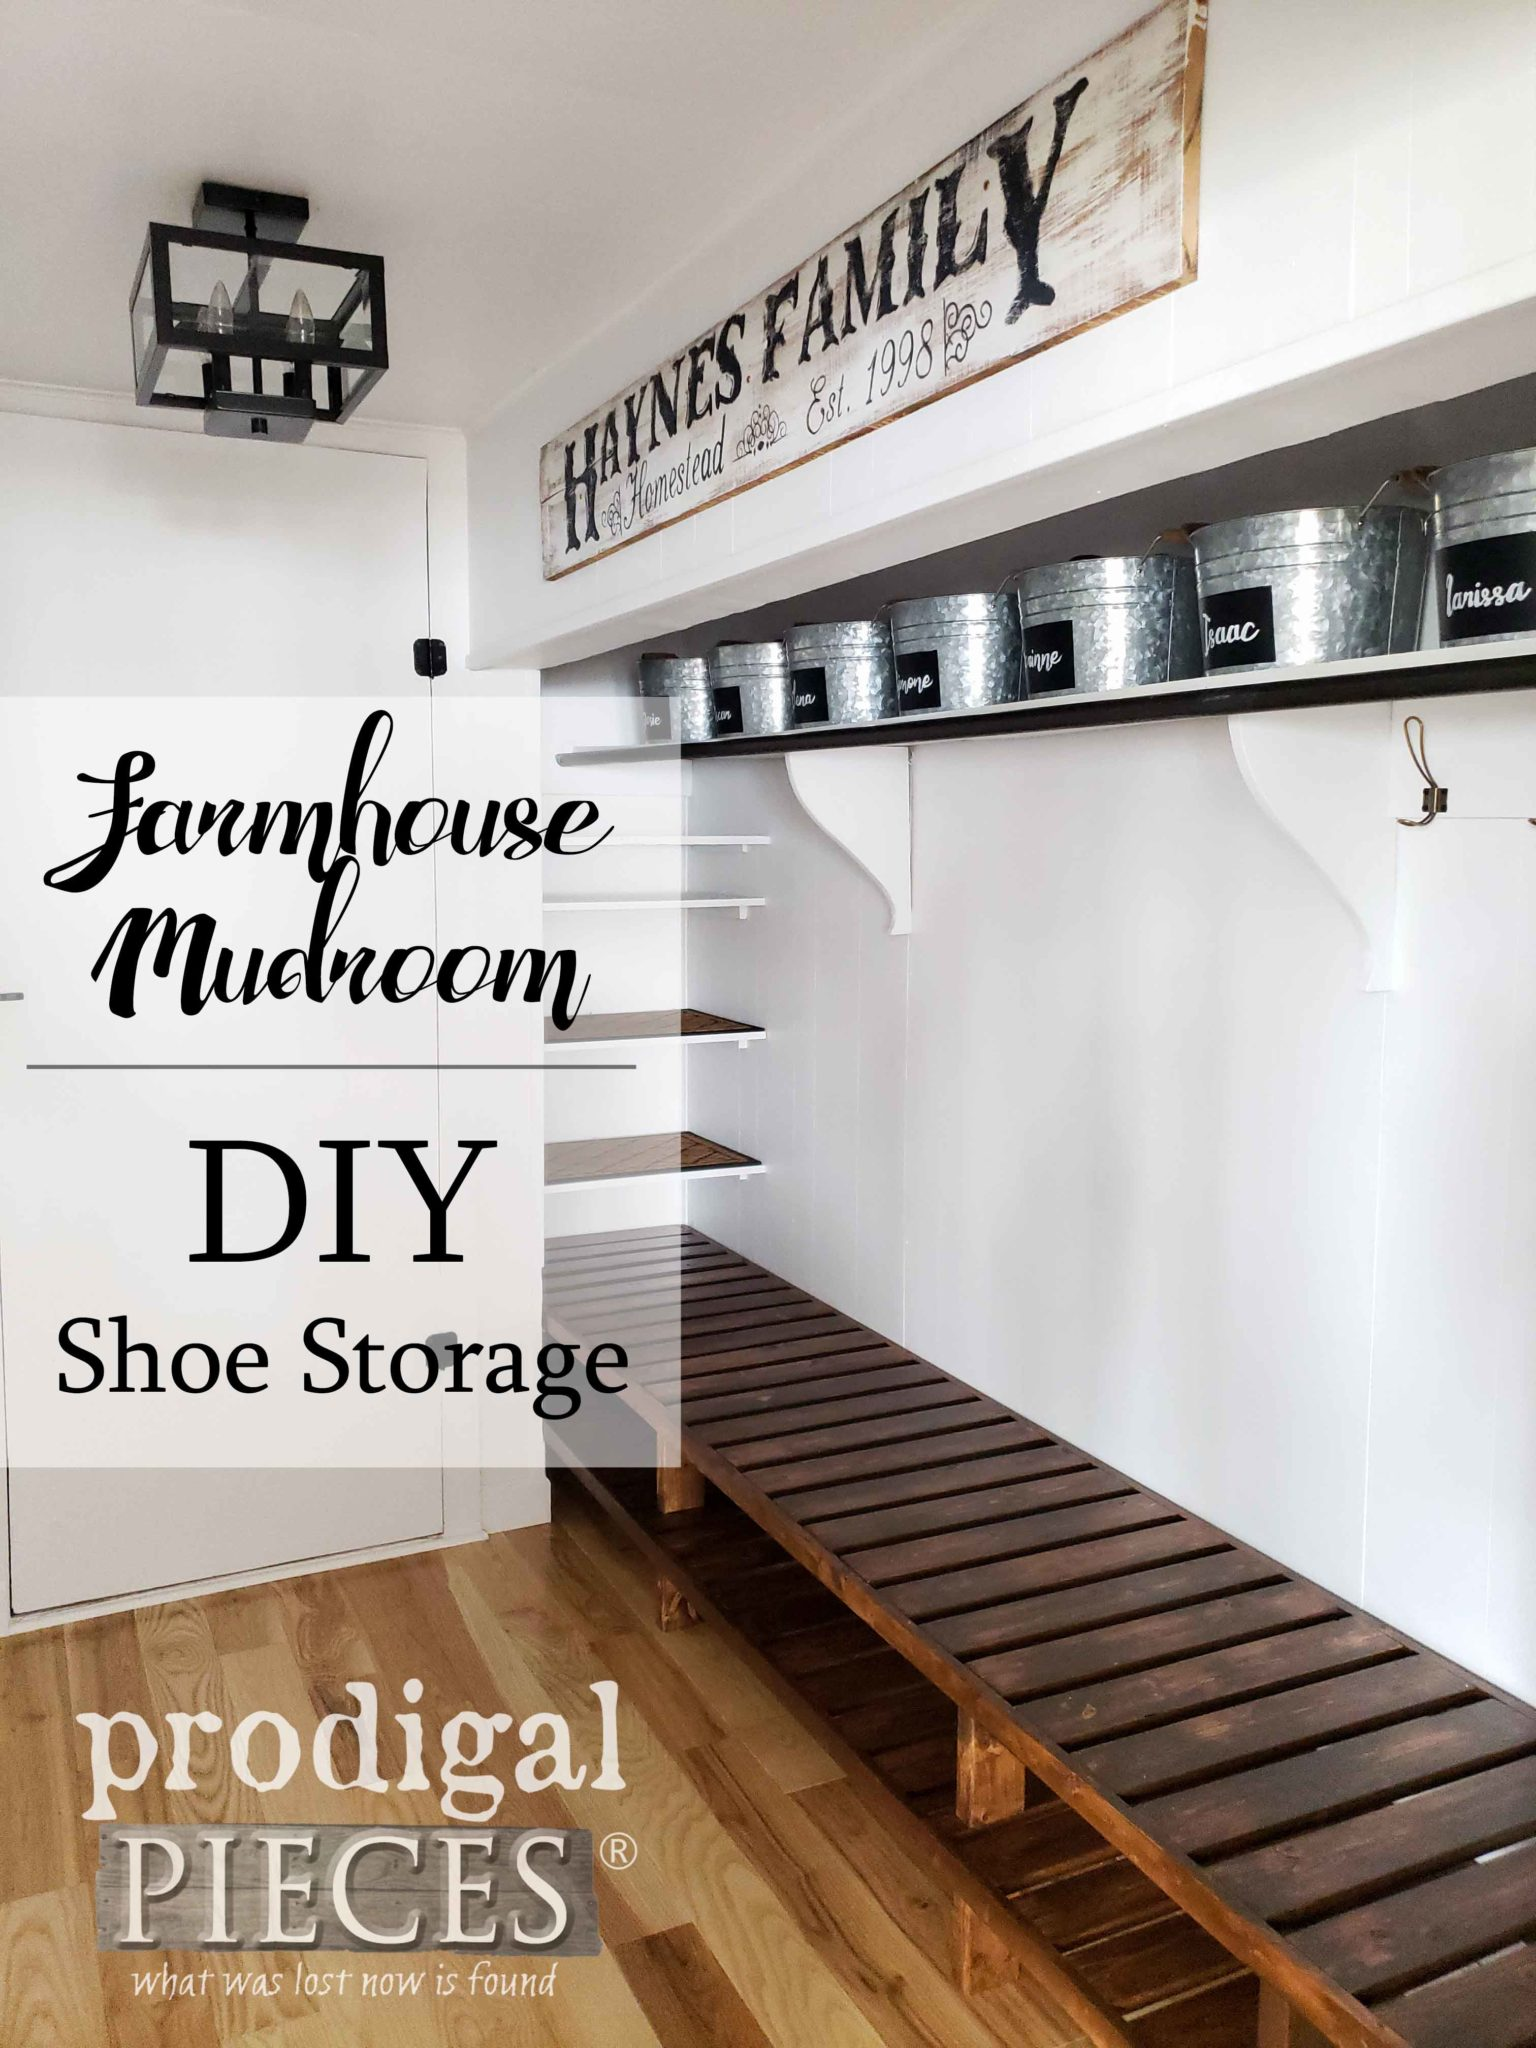 A must see! Check out this farmhouse style mudroom update complete with custom built-in DIY shoe storage Full video tour and DIY steps for you by Larissa of Prodigal Pieces | Head to prodigalpieces.com #prodigalpieces #farmhouse #diy #home #storage #homedecor #homeimprovement